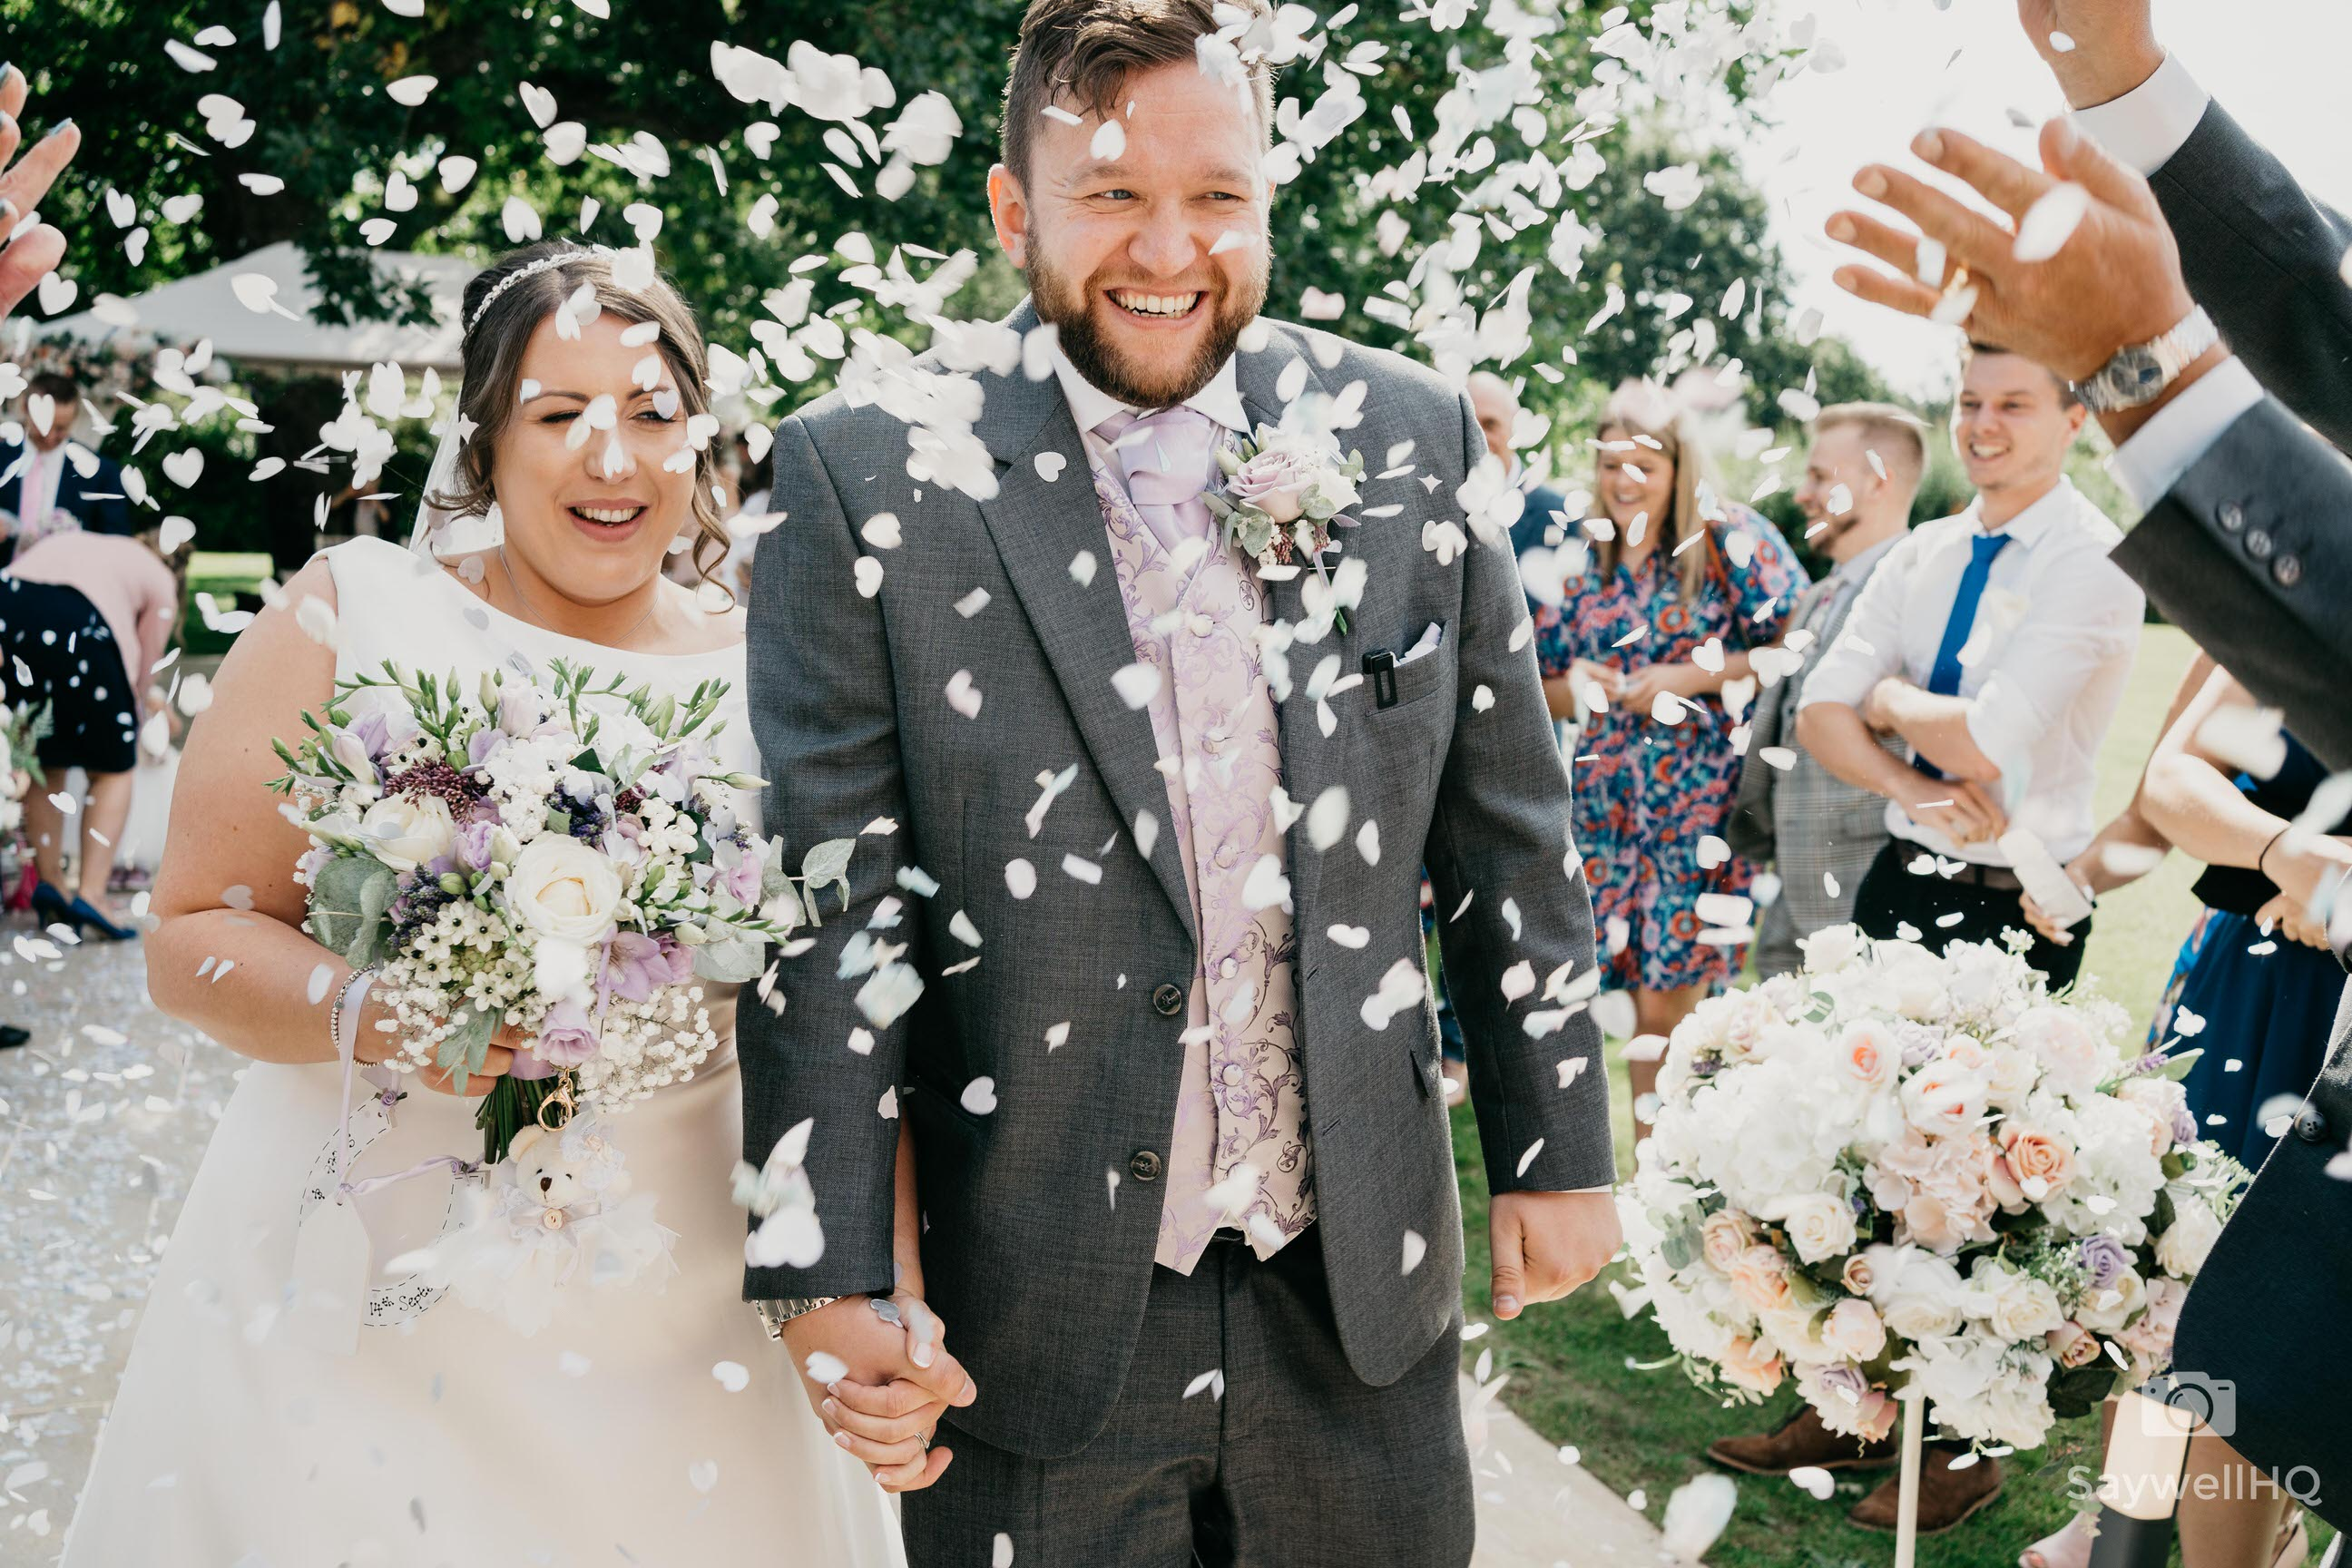 Wedding photography reviews - bride and groom walking through confetti at their wedding at Winstanley House